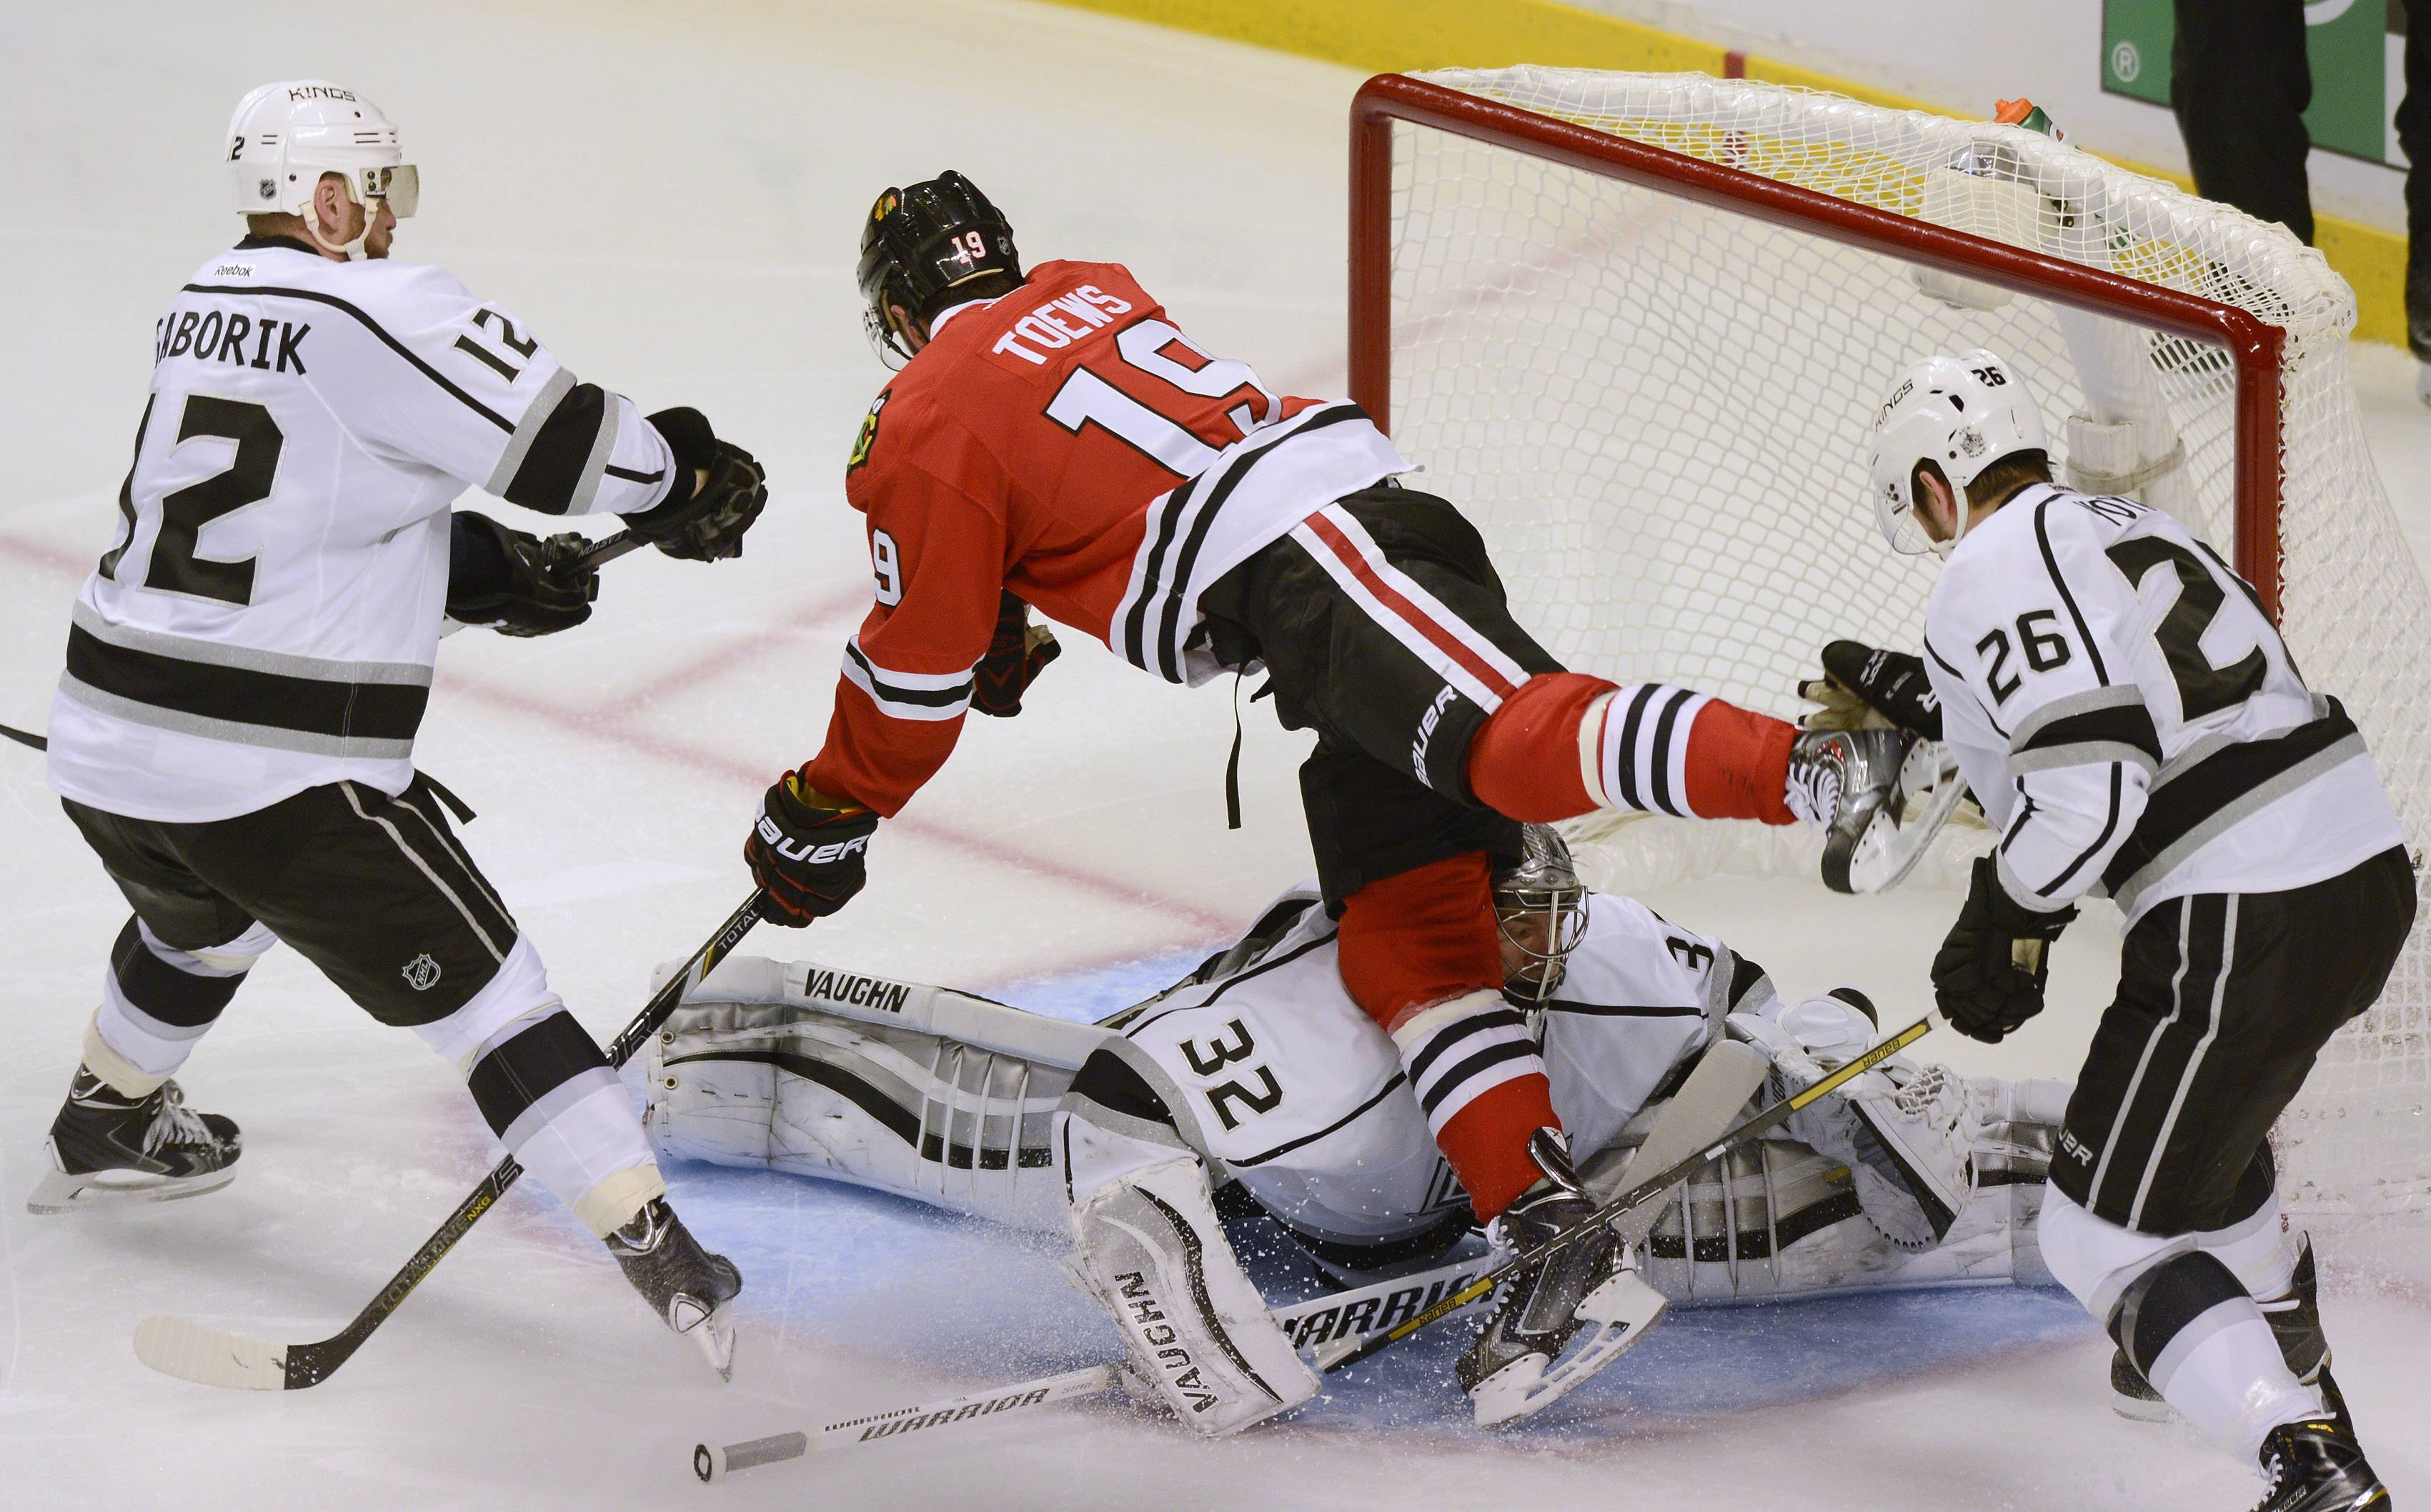 Blackhawks center Jonathan Toews makes contact with Los Angeles Kings goalie Jonathan Quick on a goal that wound up being disallowed during Sunday's game at the United Center in Chicago. Marian Gaborik of the Kings is at left, and teammate Slava Voynov is at right.